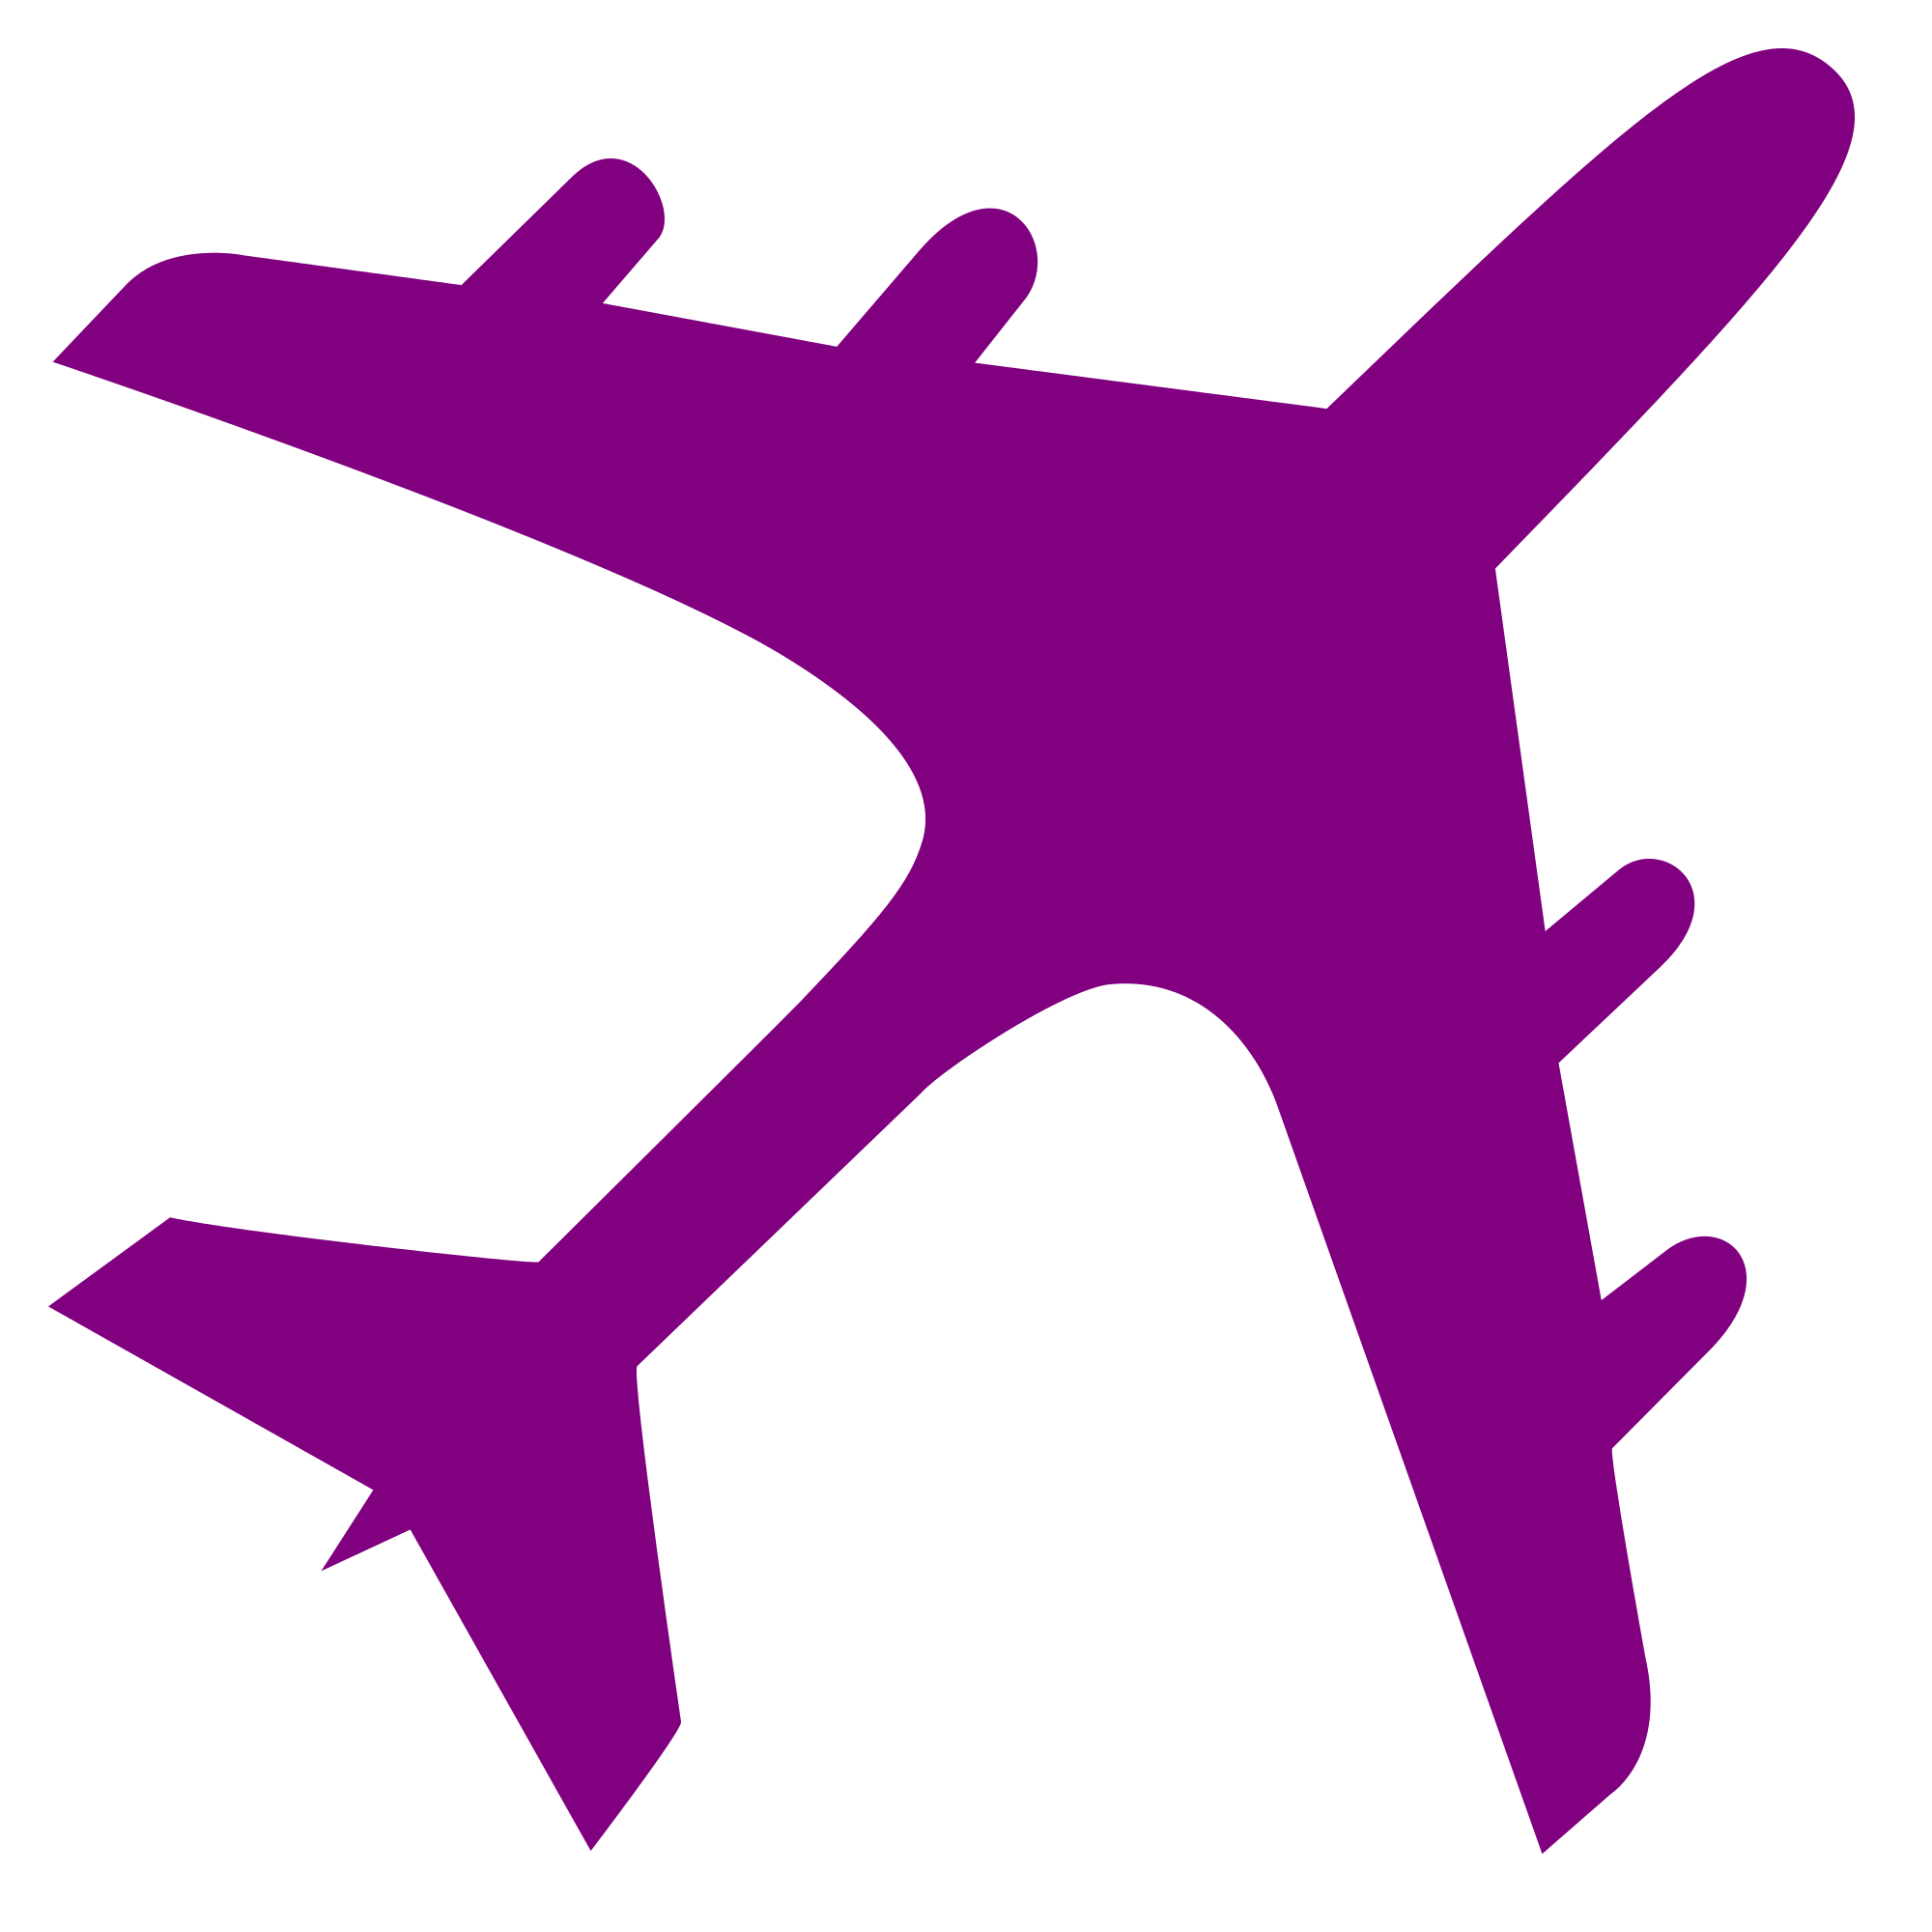 Purple clipart medal. File airplane silhouette svg